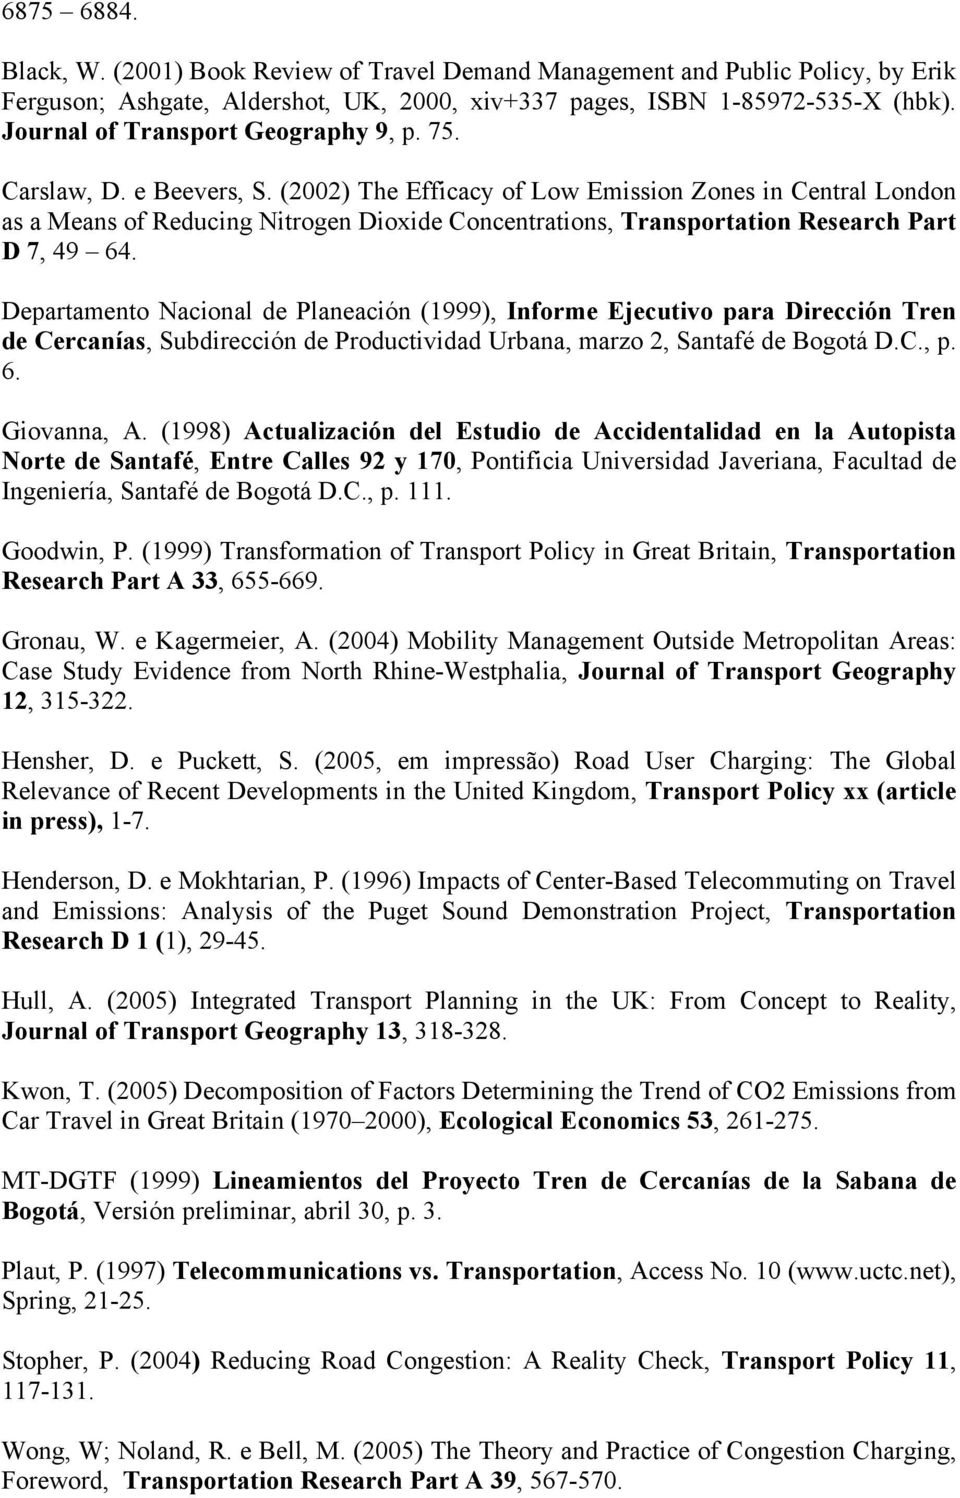 (2002) The Efficacy of Low Emission Zones in Central London as a Means of Reducing Nitrogen Dioxide Concentrations, Transportation Research Part D 7, 49 64.